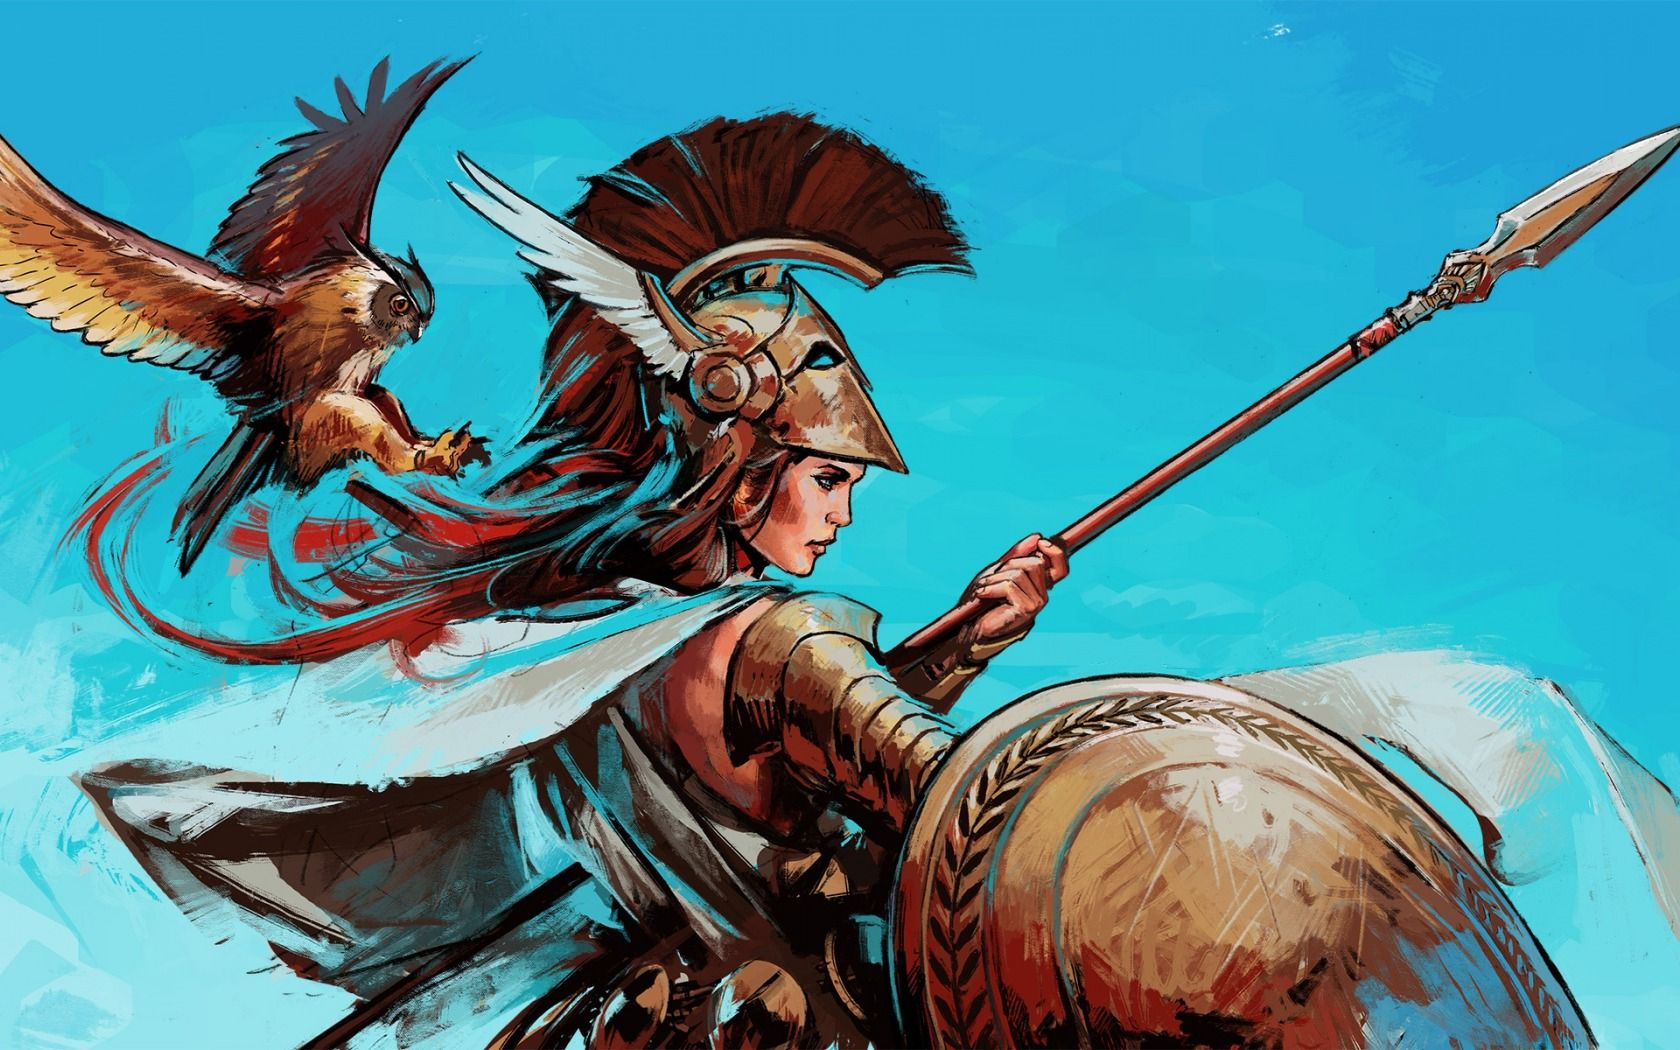 Download wallpaper spear, shield, bird, greek mythology, goddess